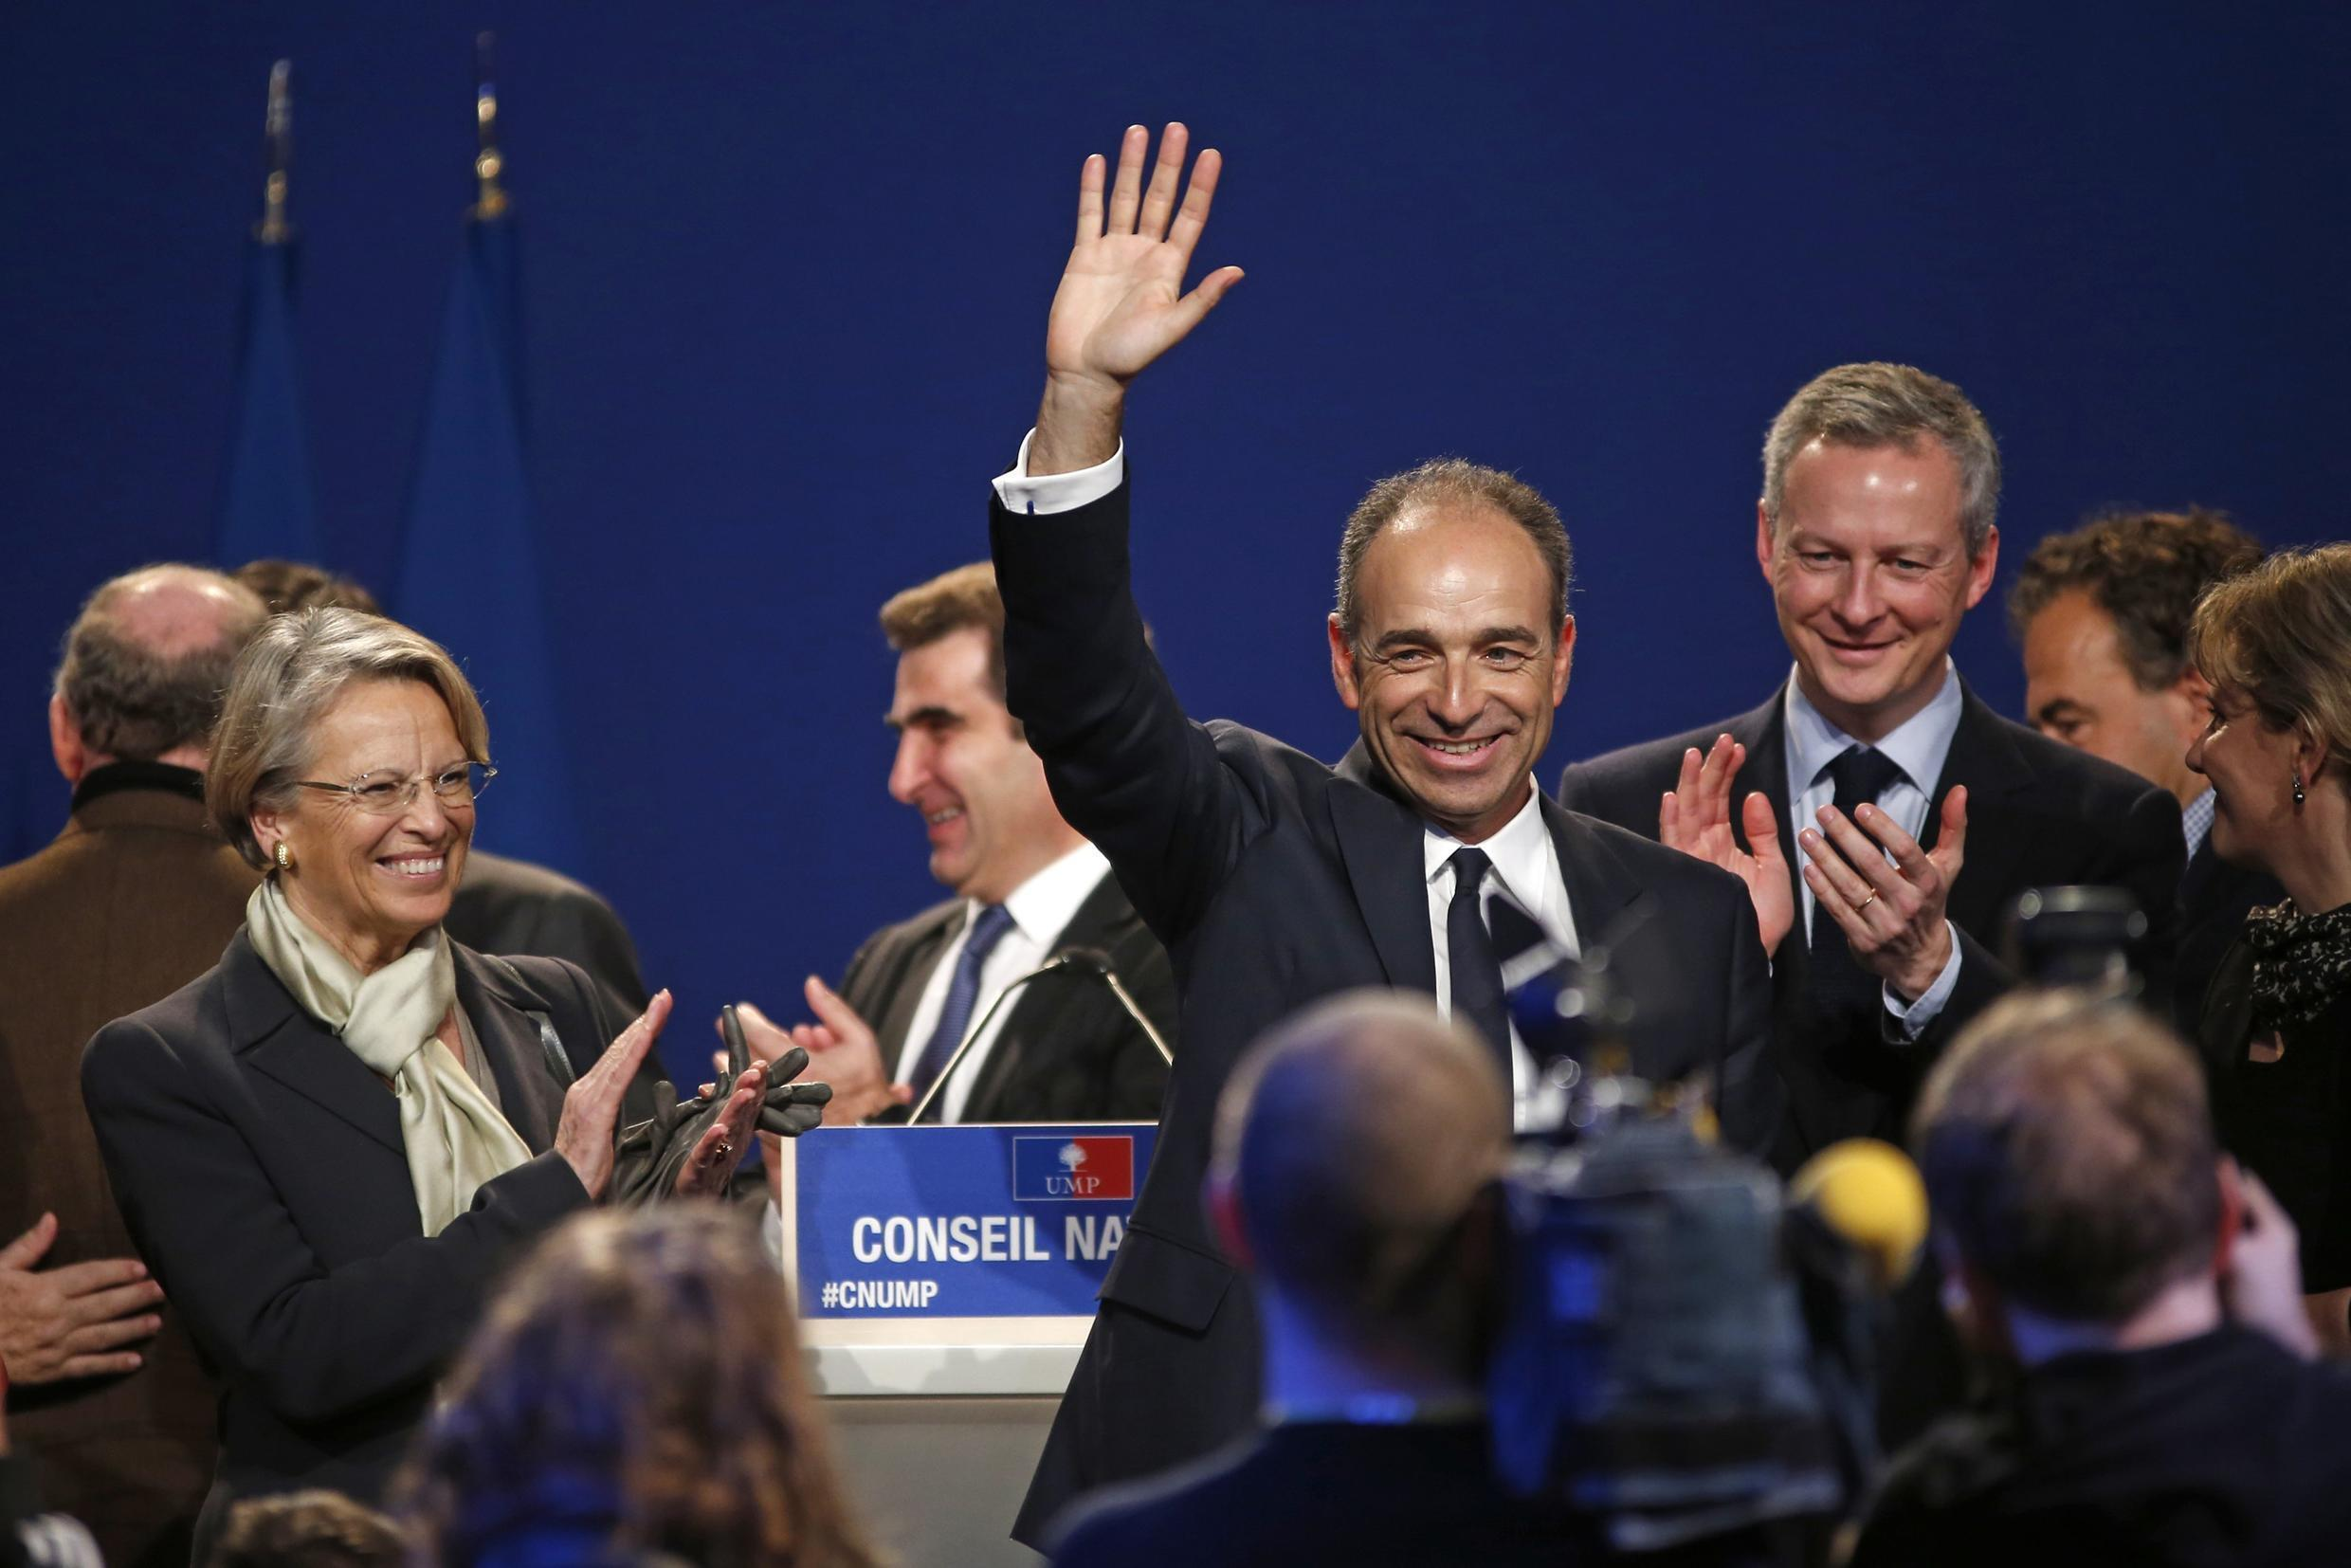 Jean-François Copé (middle) at the UMP national meeting on Saturday.